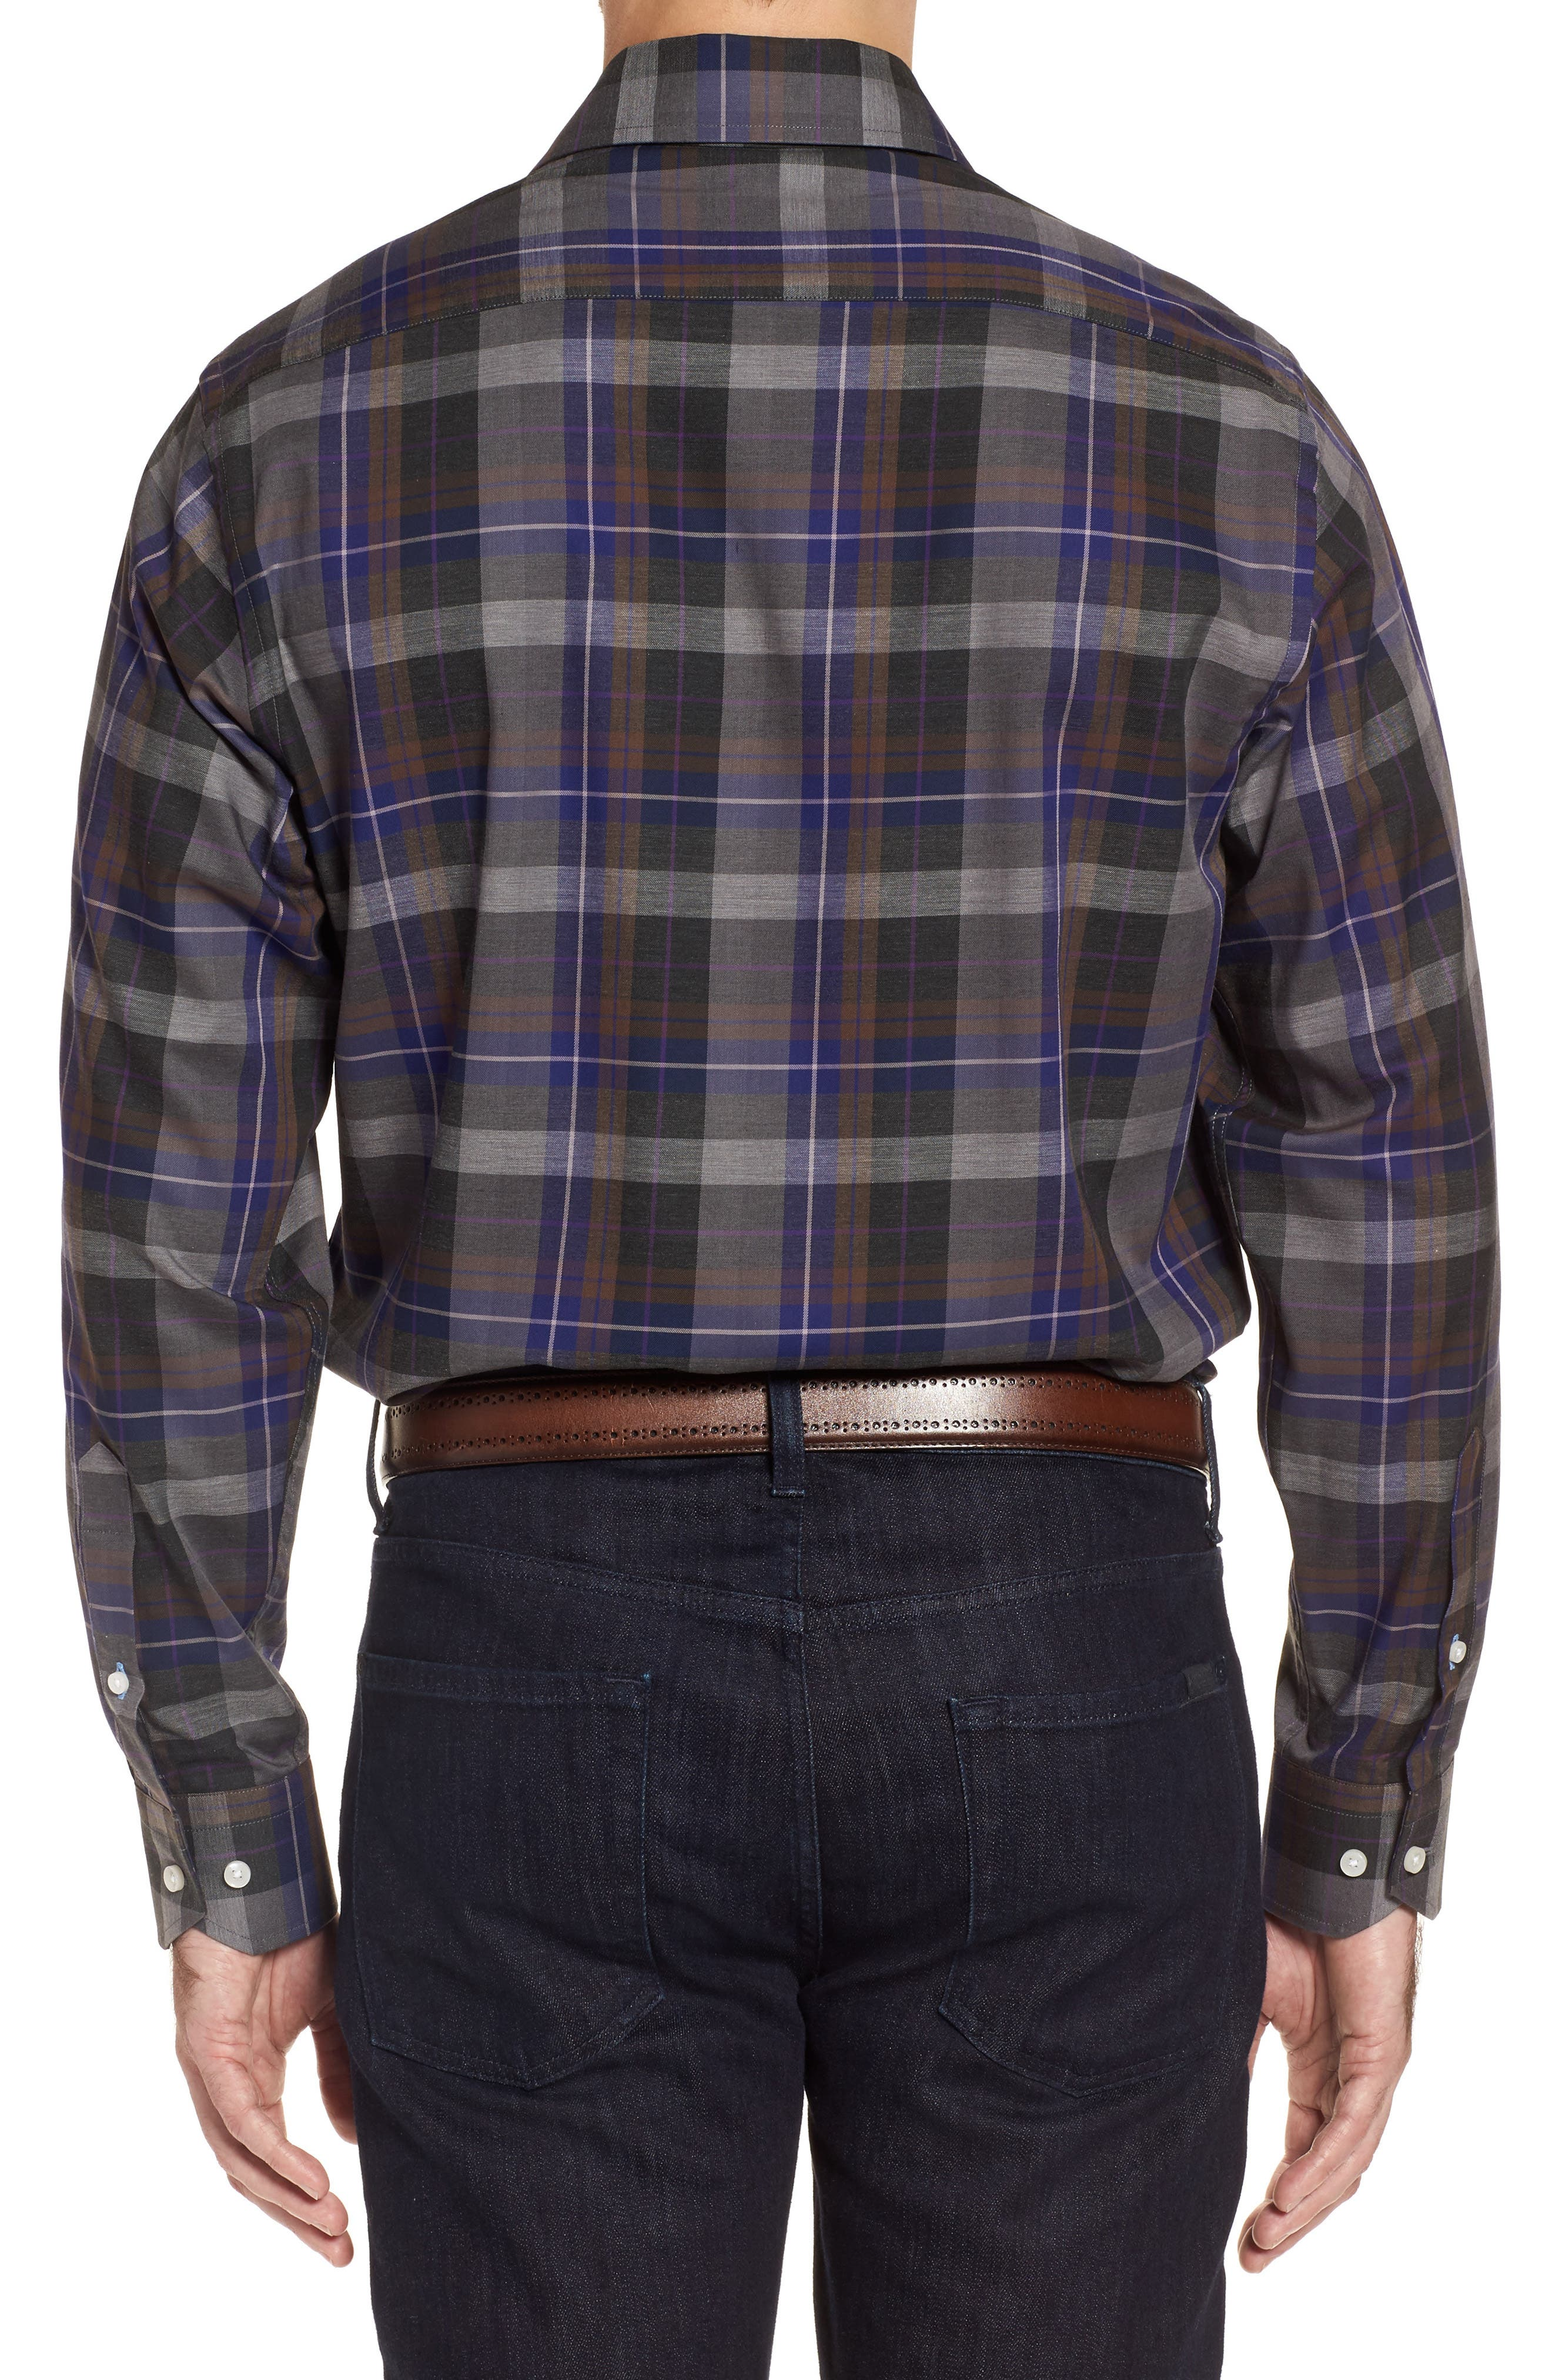 Cullen Plaid Twill Sport Shirt,                             Alternate thumbnail 2, color,                             Blue